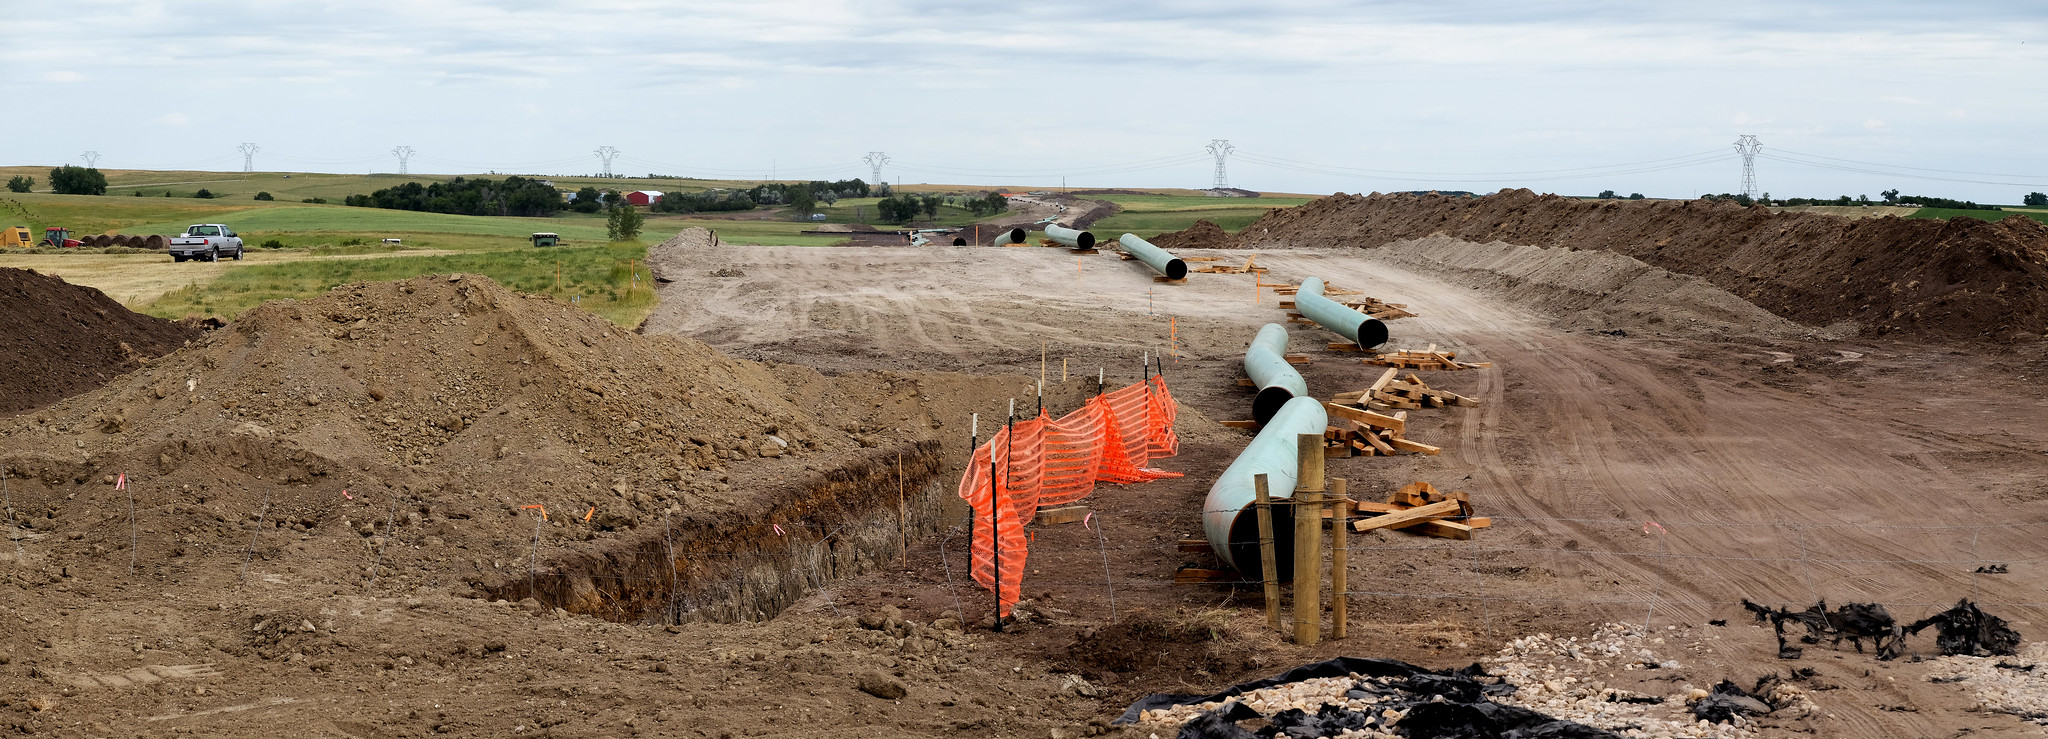 The Dakota Access Pipeline (under construction)